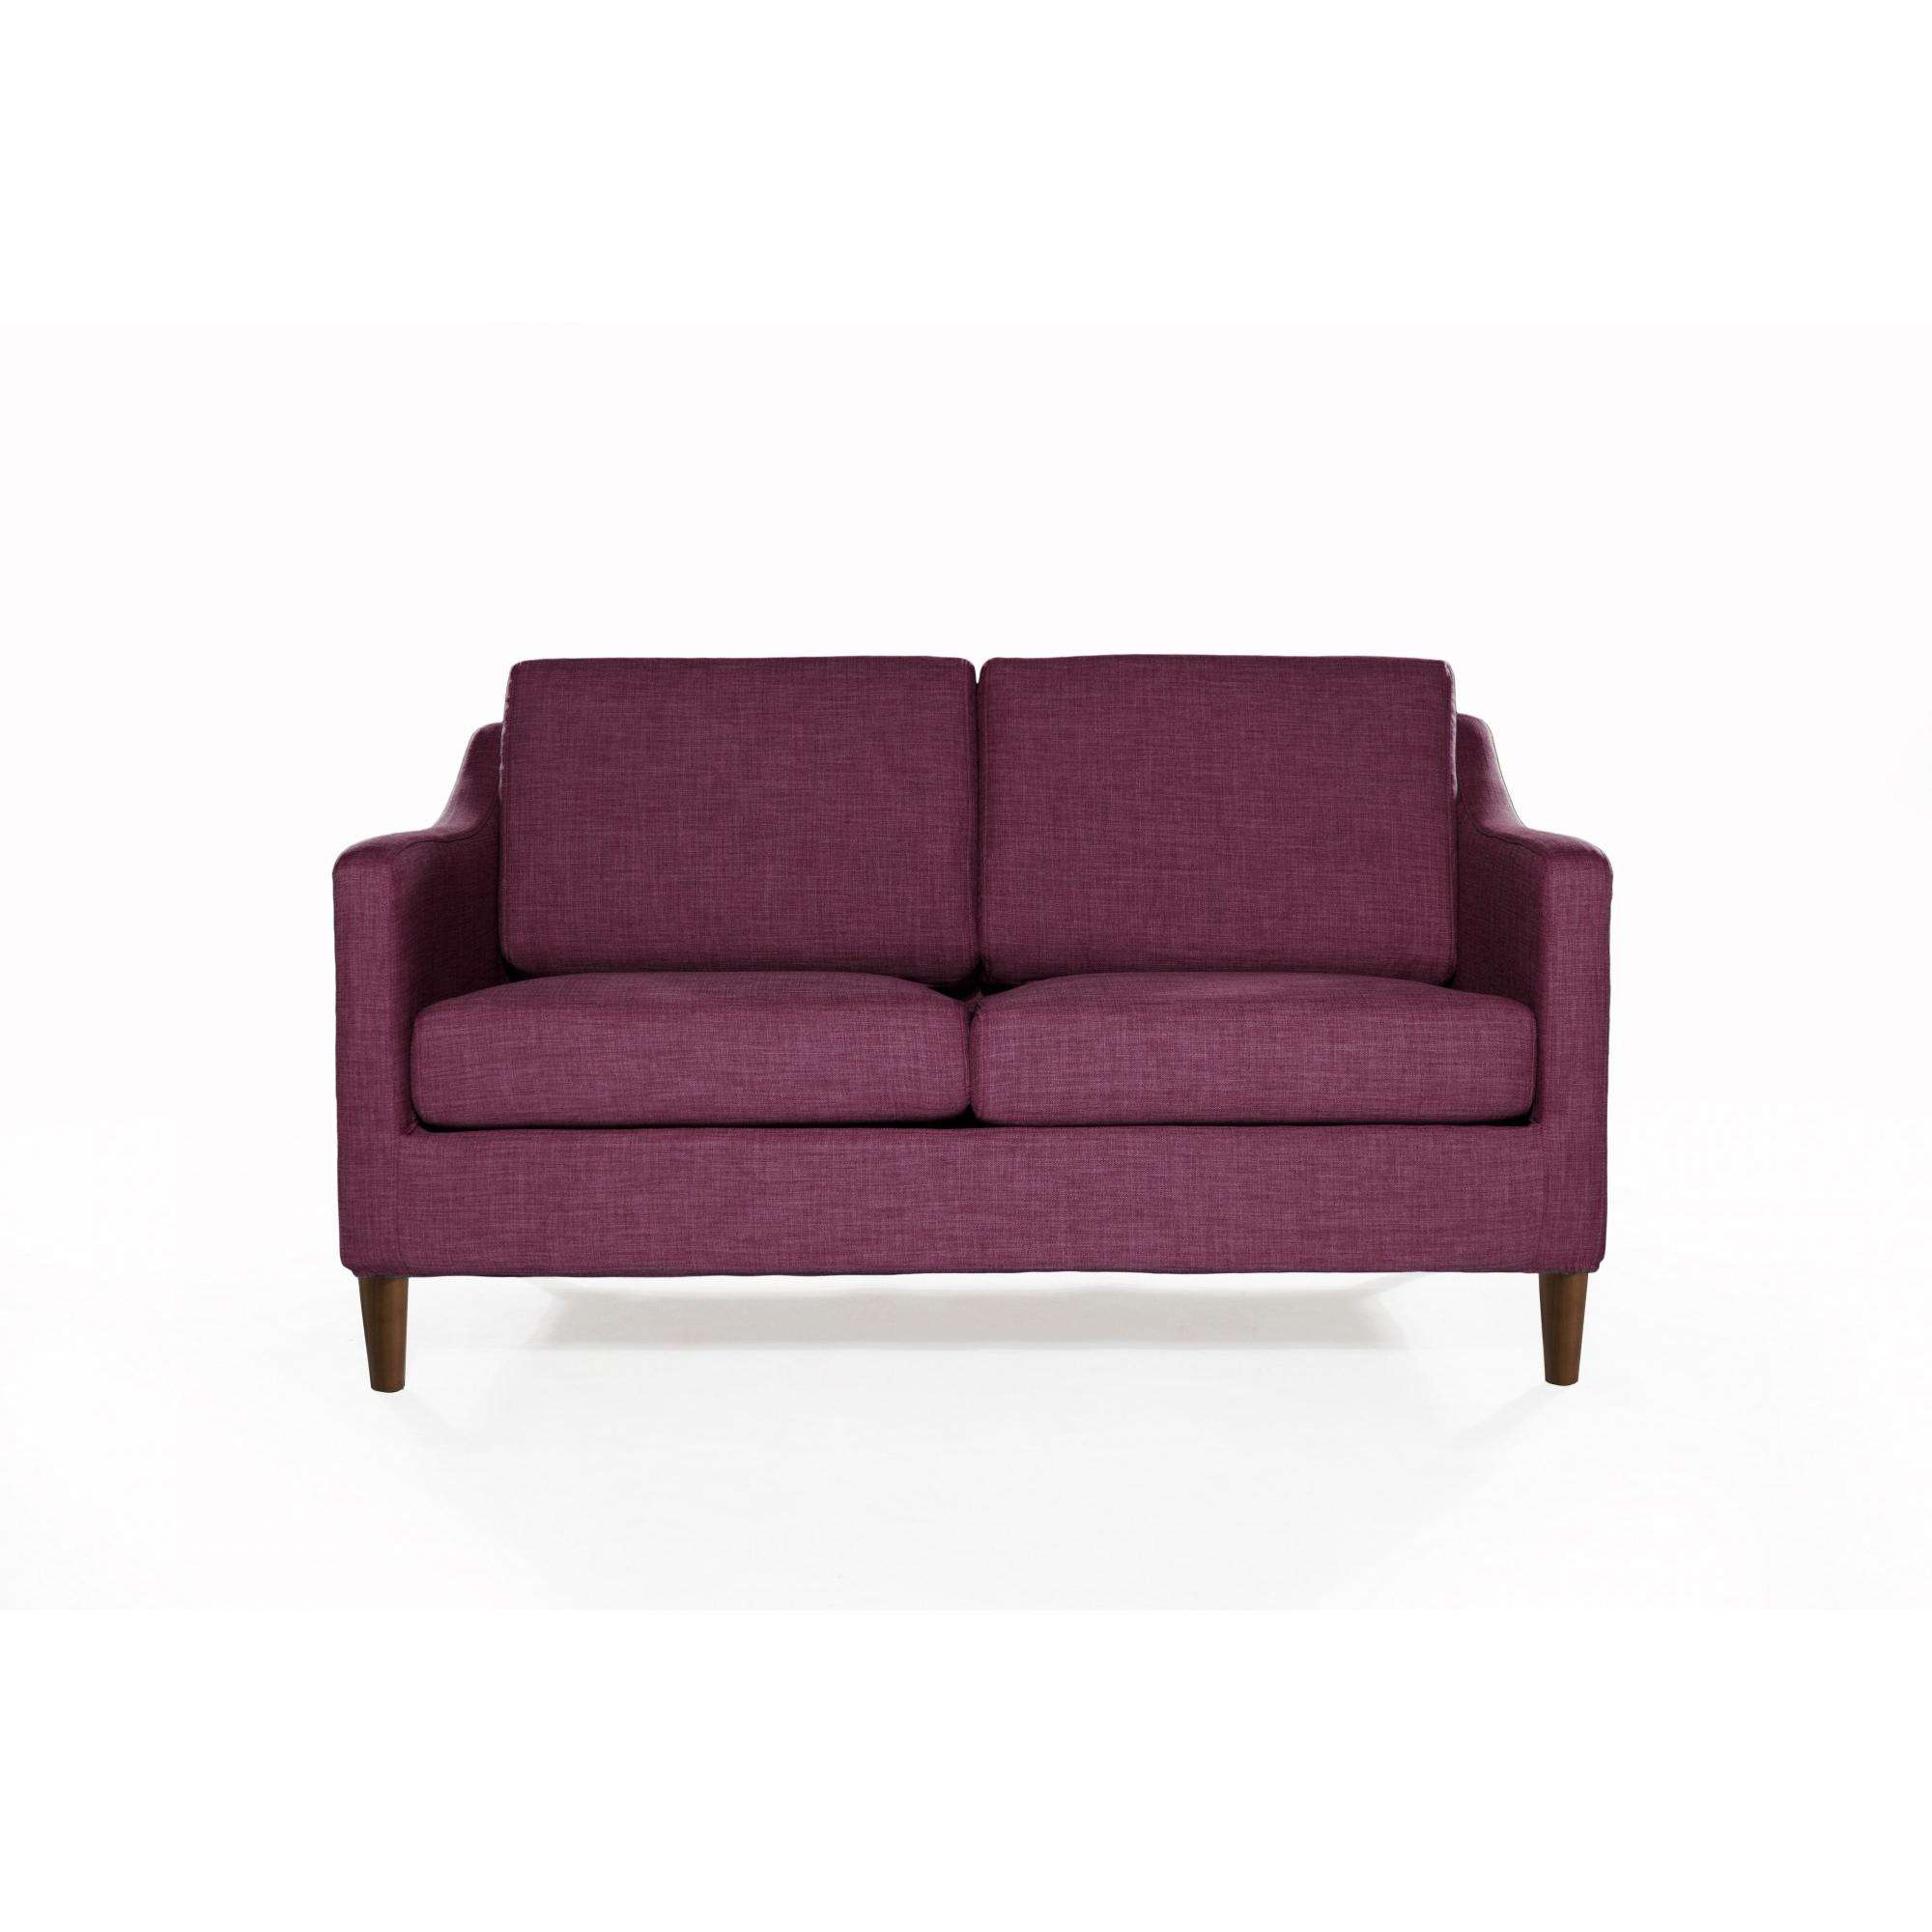 """Better Homes & Gardens 55"""" Griffin Loveseat, Multiple Colors by Dwell Home Inc."""